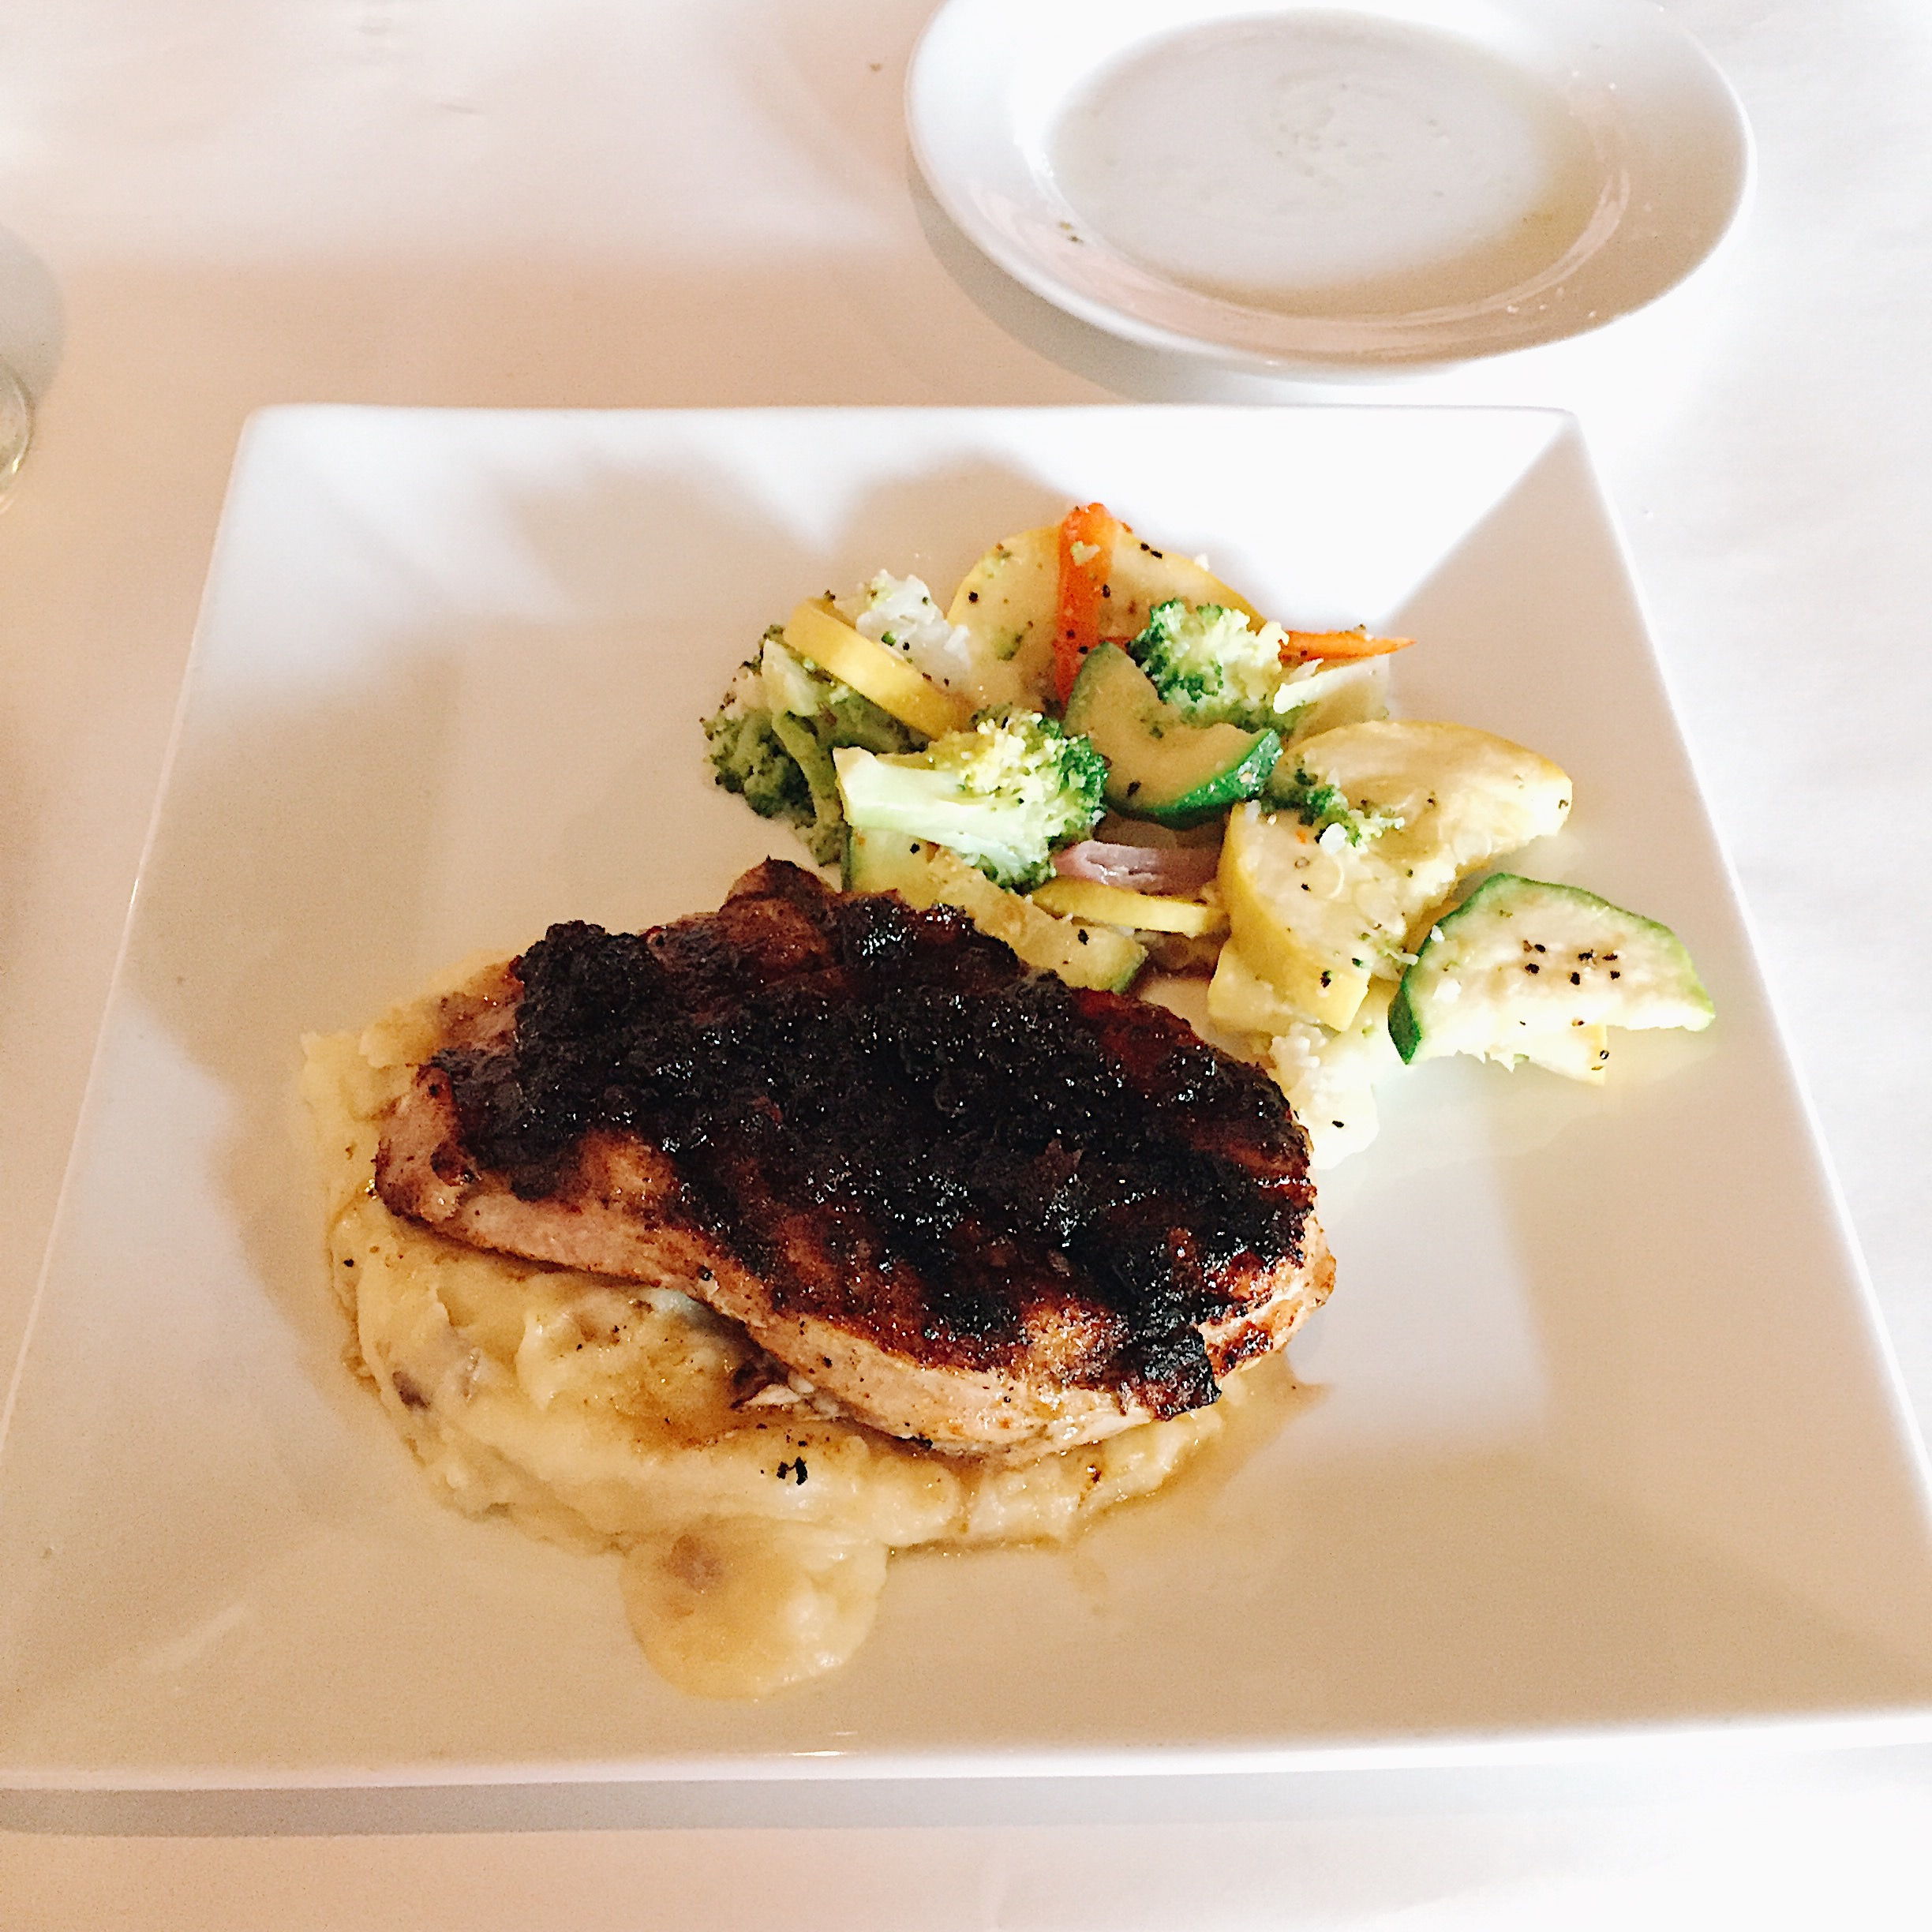 Cherry Glazed Pork with mashed potatoes and grilled veggies